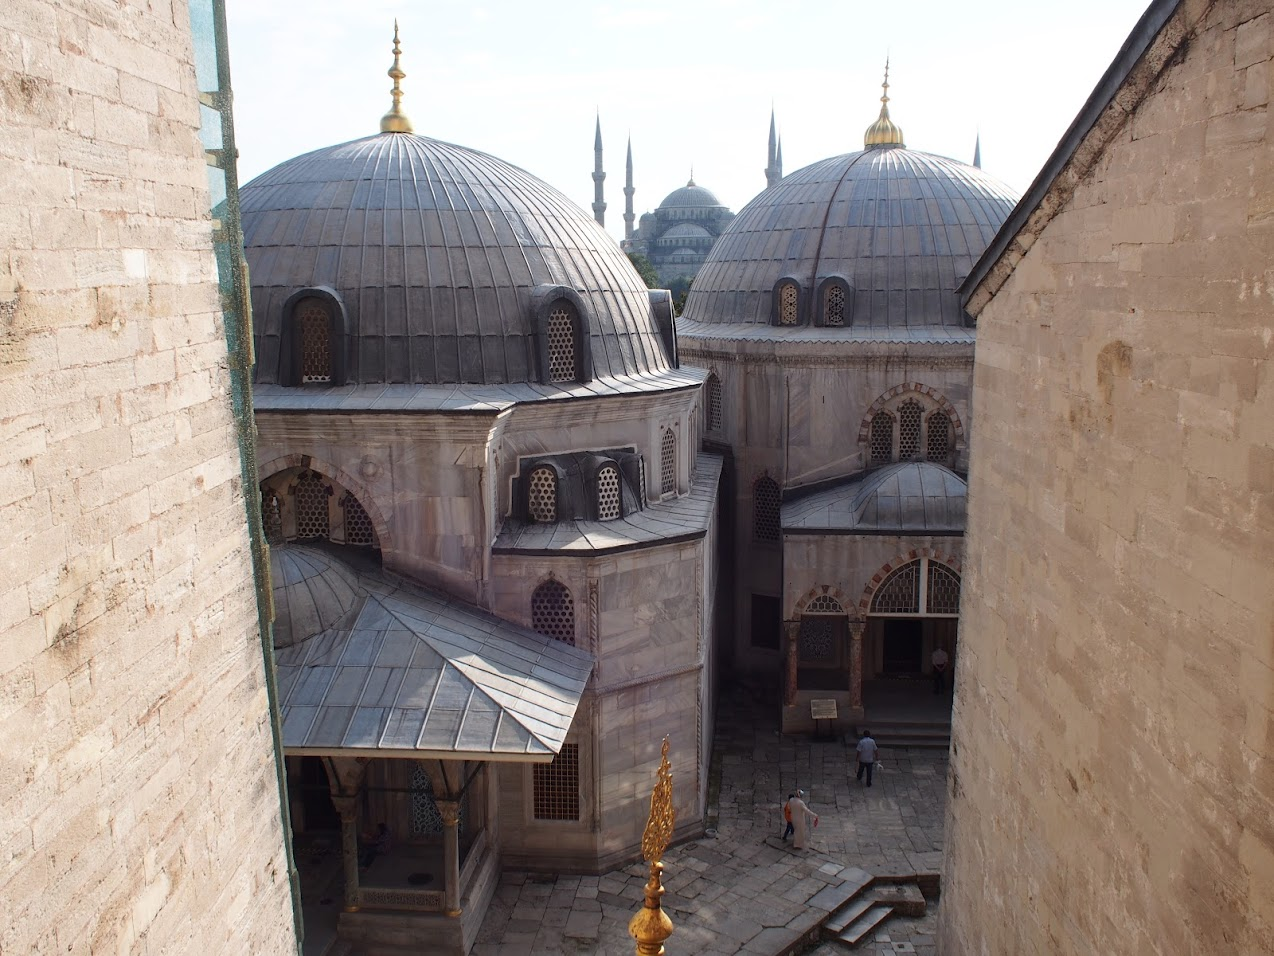 Hagia Sophia window view